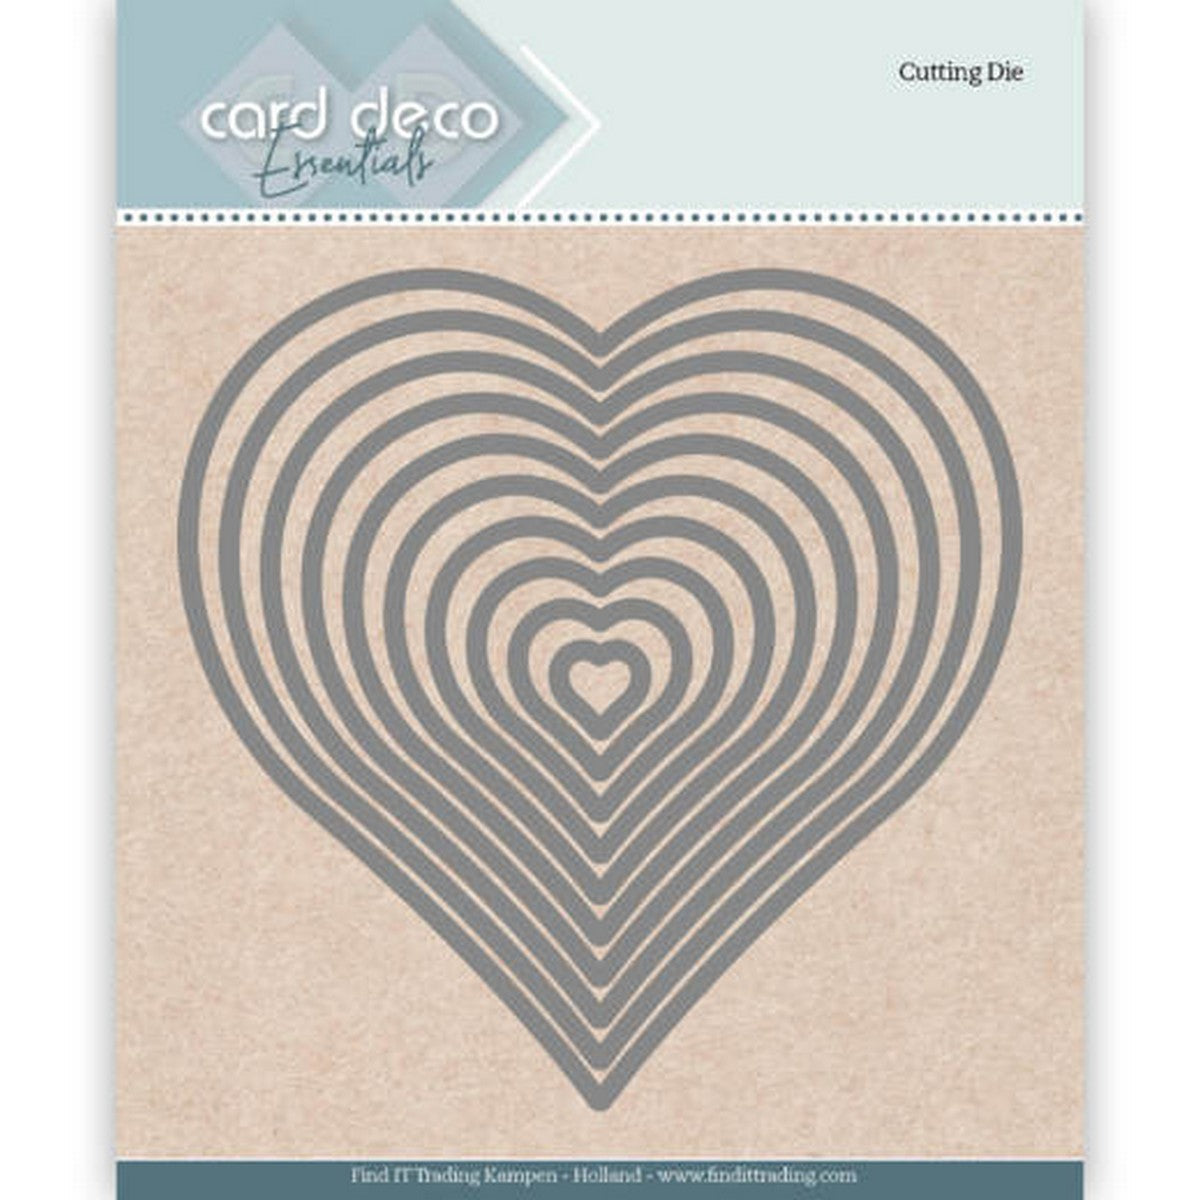 Card Deco - Heart Nesting Dies